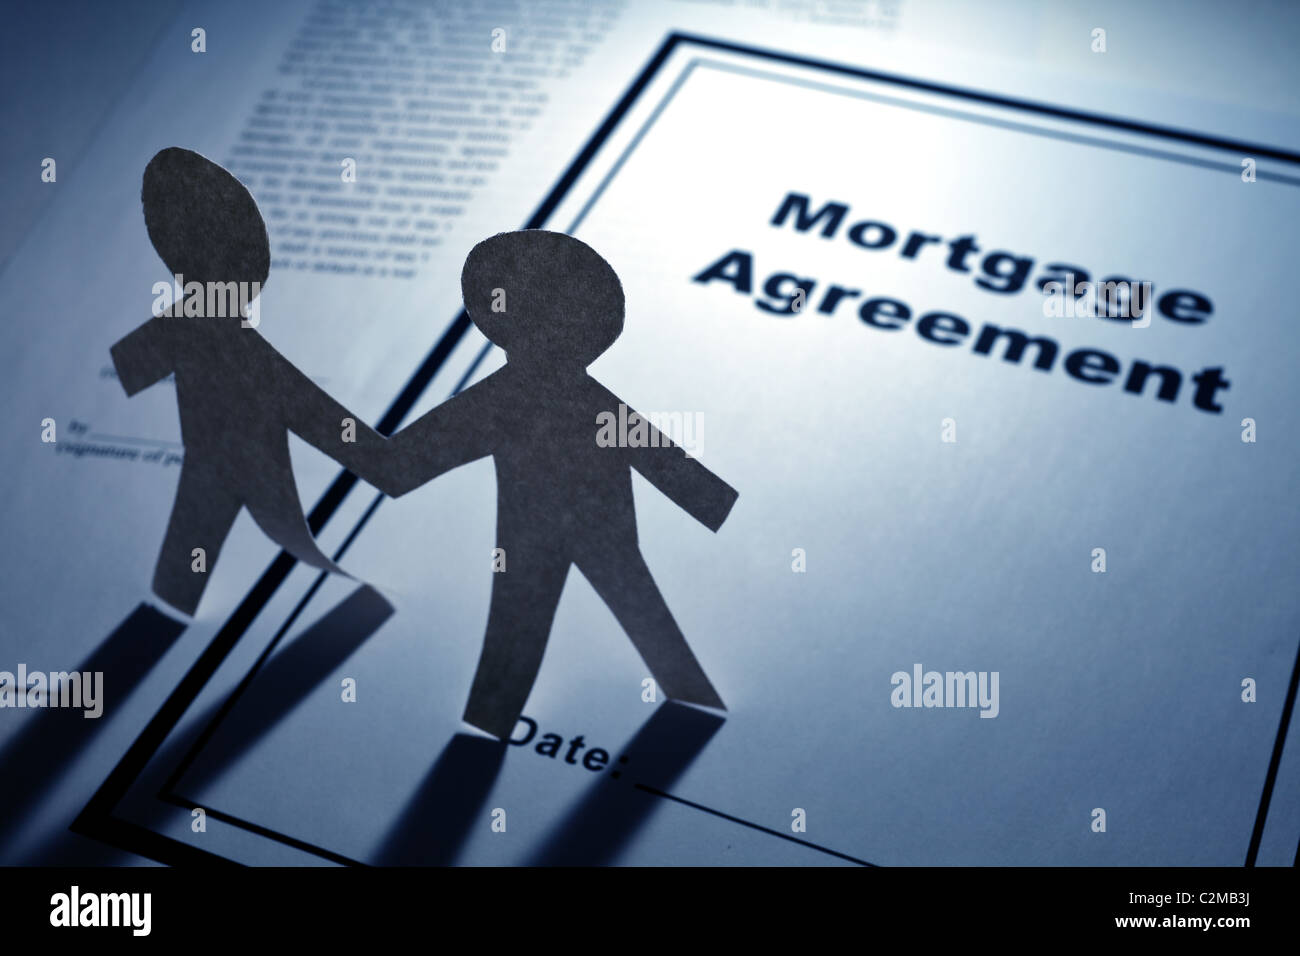 Mortgage Agreement and Paper Chain Men close up - Stock Image